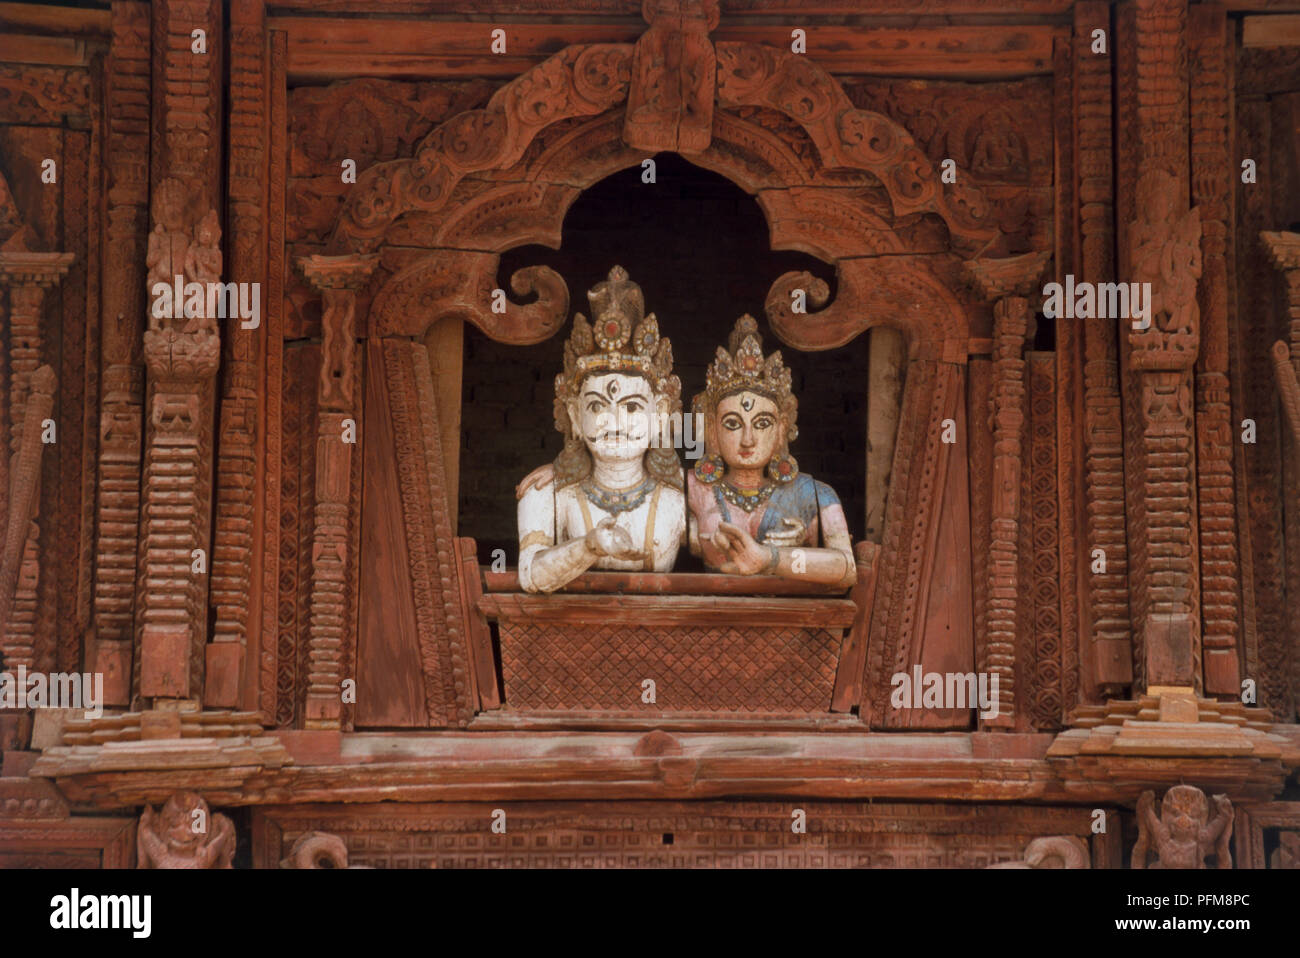 Decorative wooden images in Durbar Square, Kathmandhu. - Stock Image